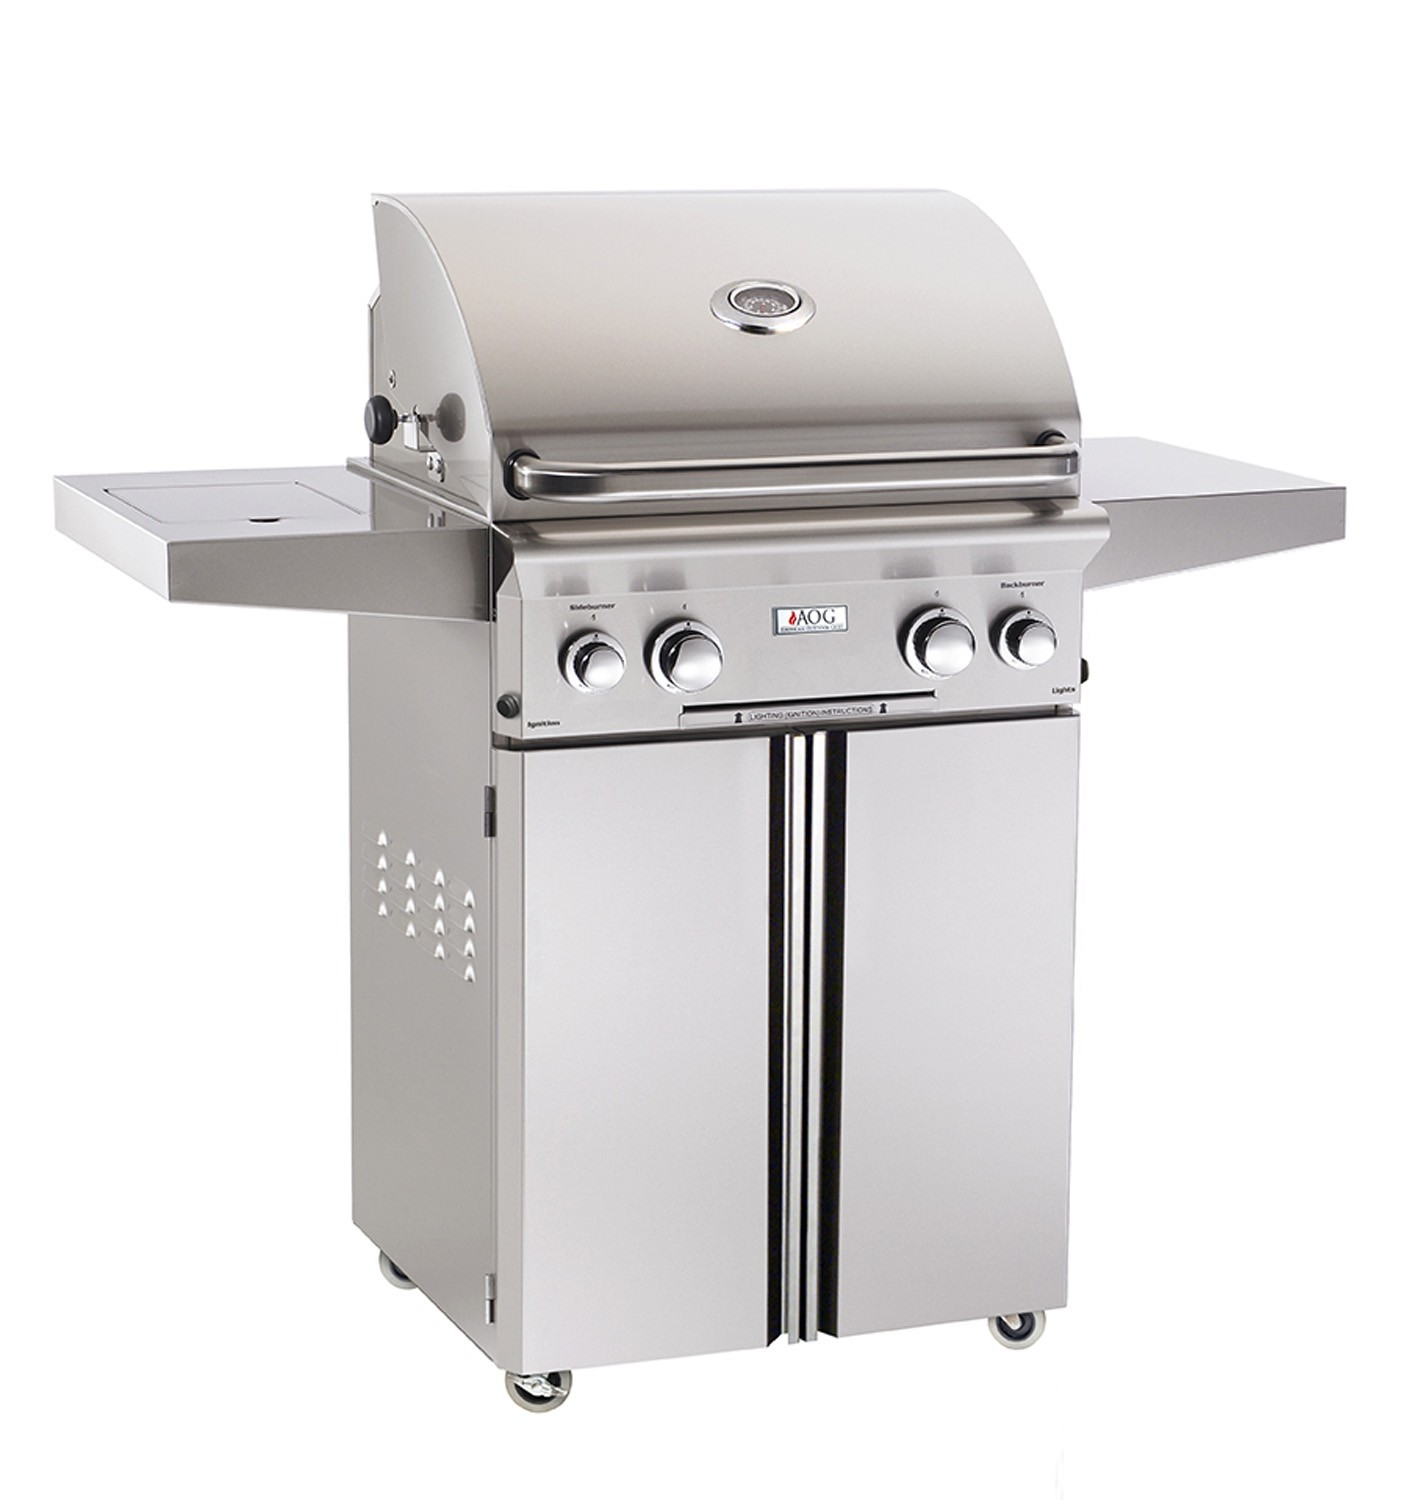 American Outdoor Grill 24 Inch Natural Gas Grill On Cart W - Grill Outdoor